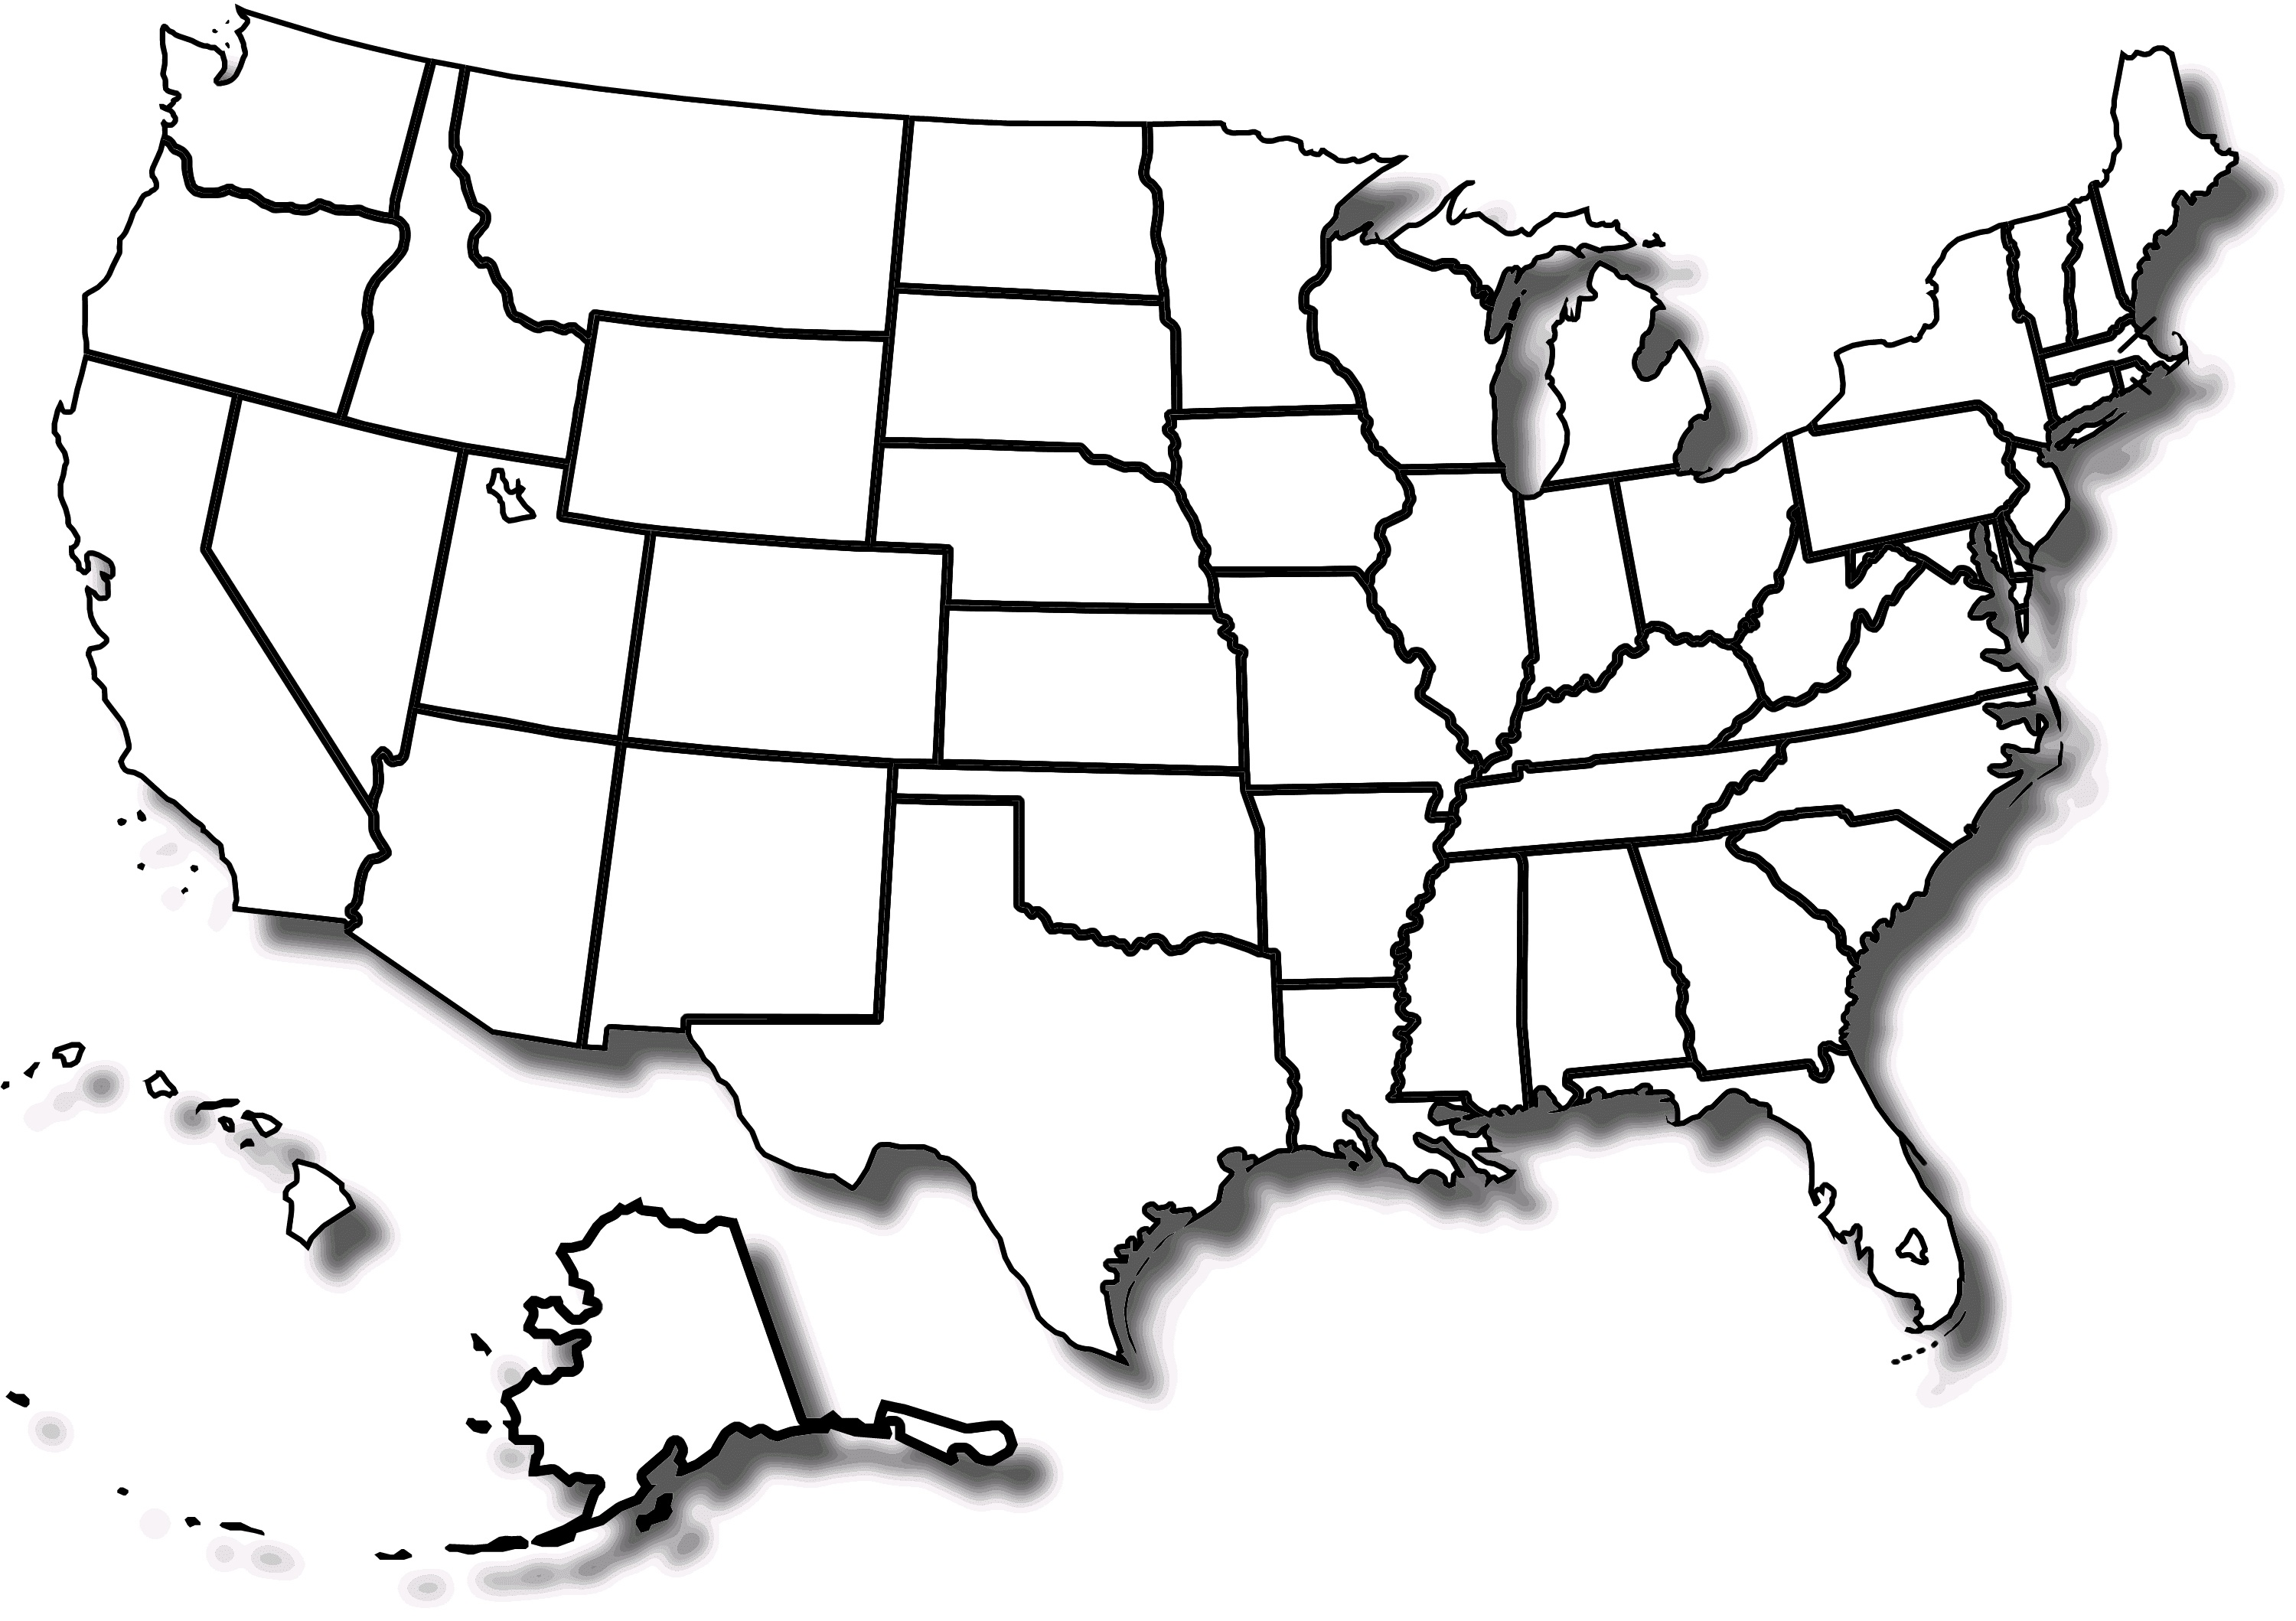 Free Printable Map Of The United States With State Names And Travel - Free Printable Map Of United States With States Labeled